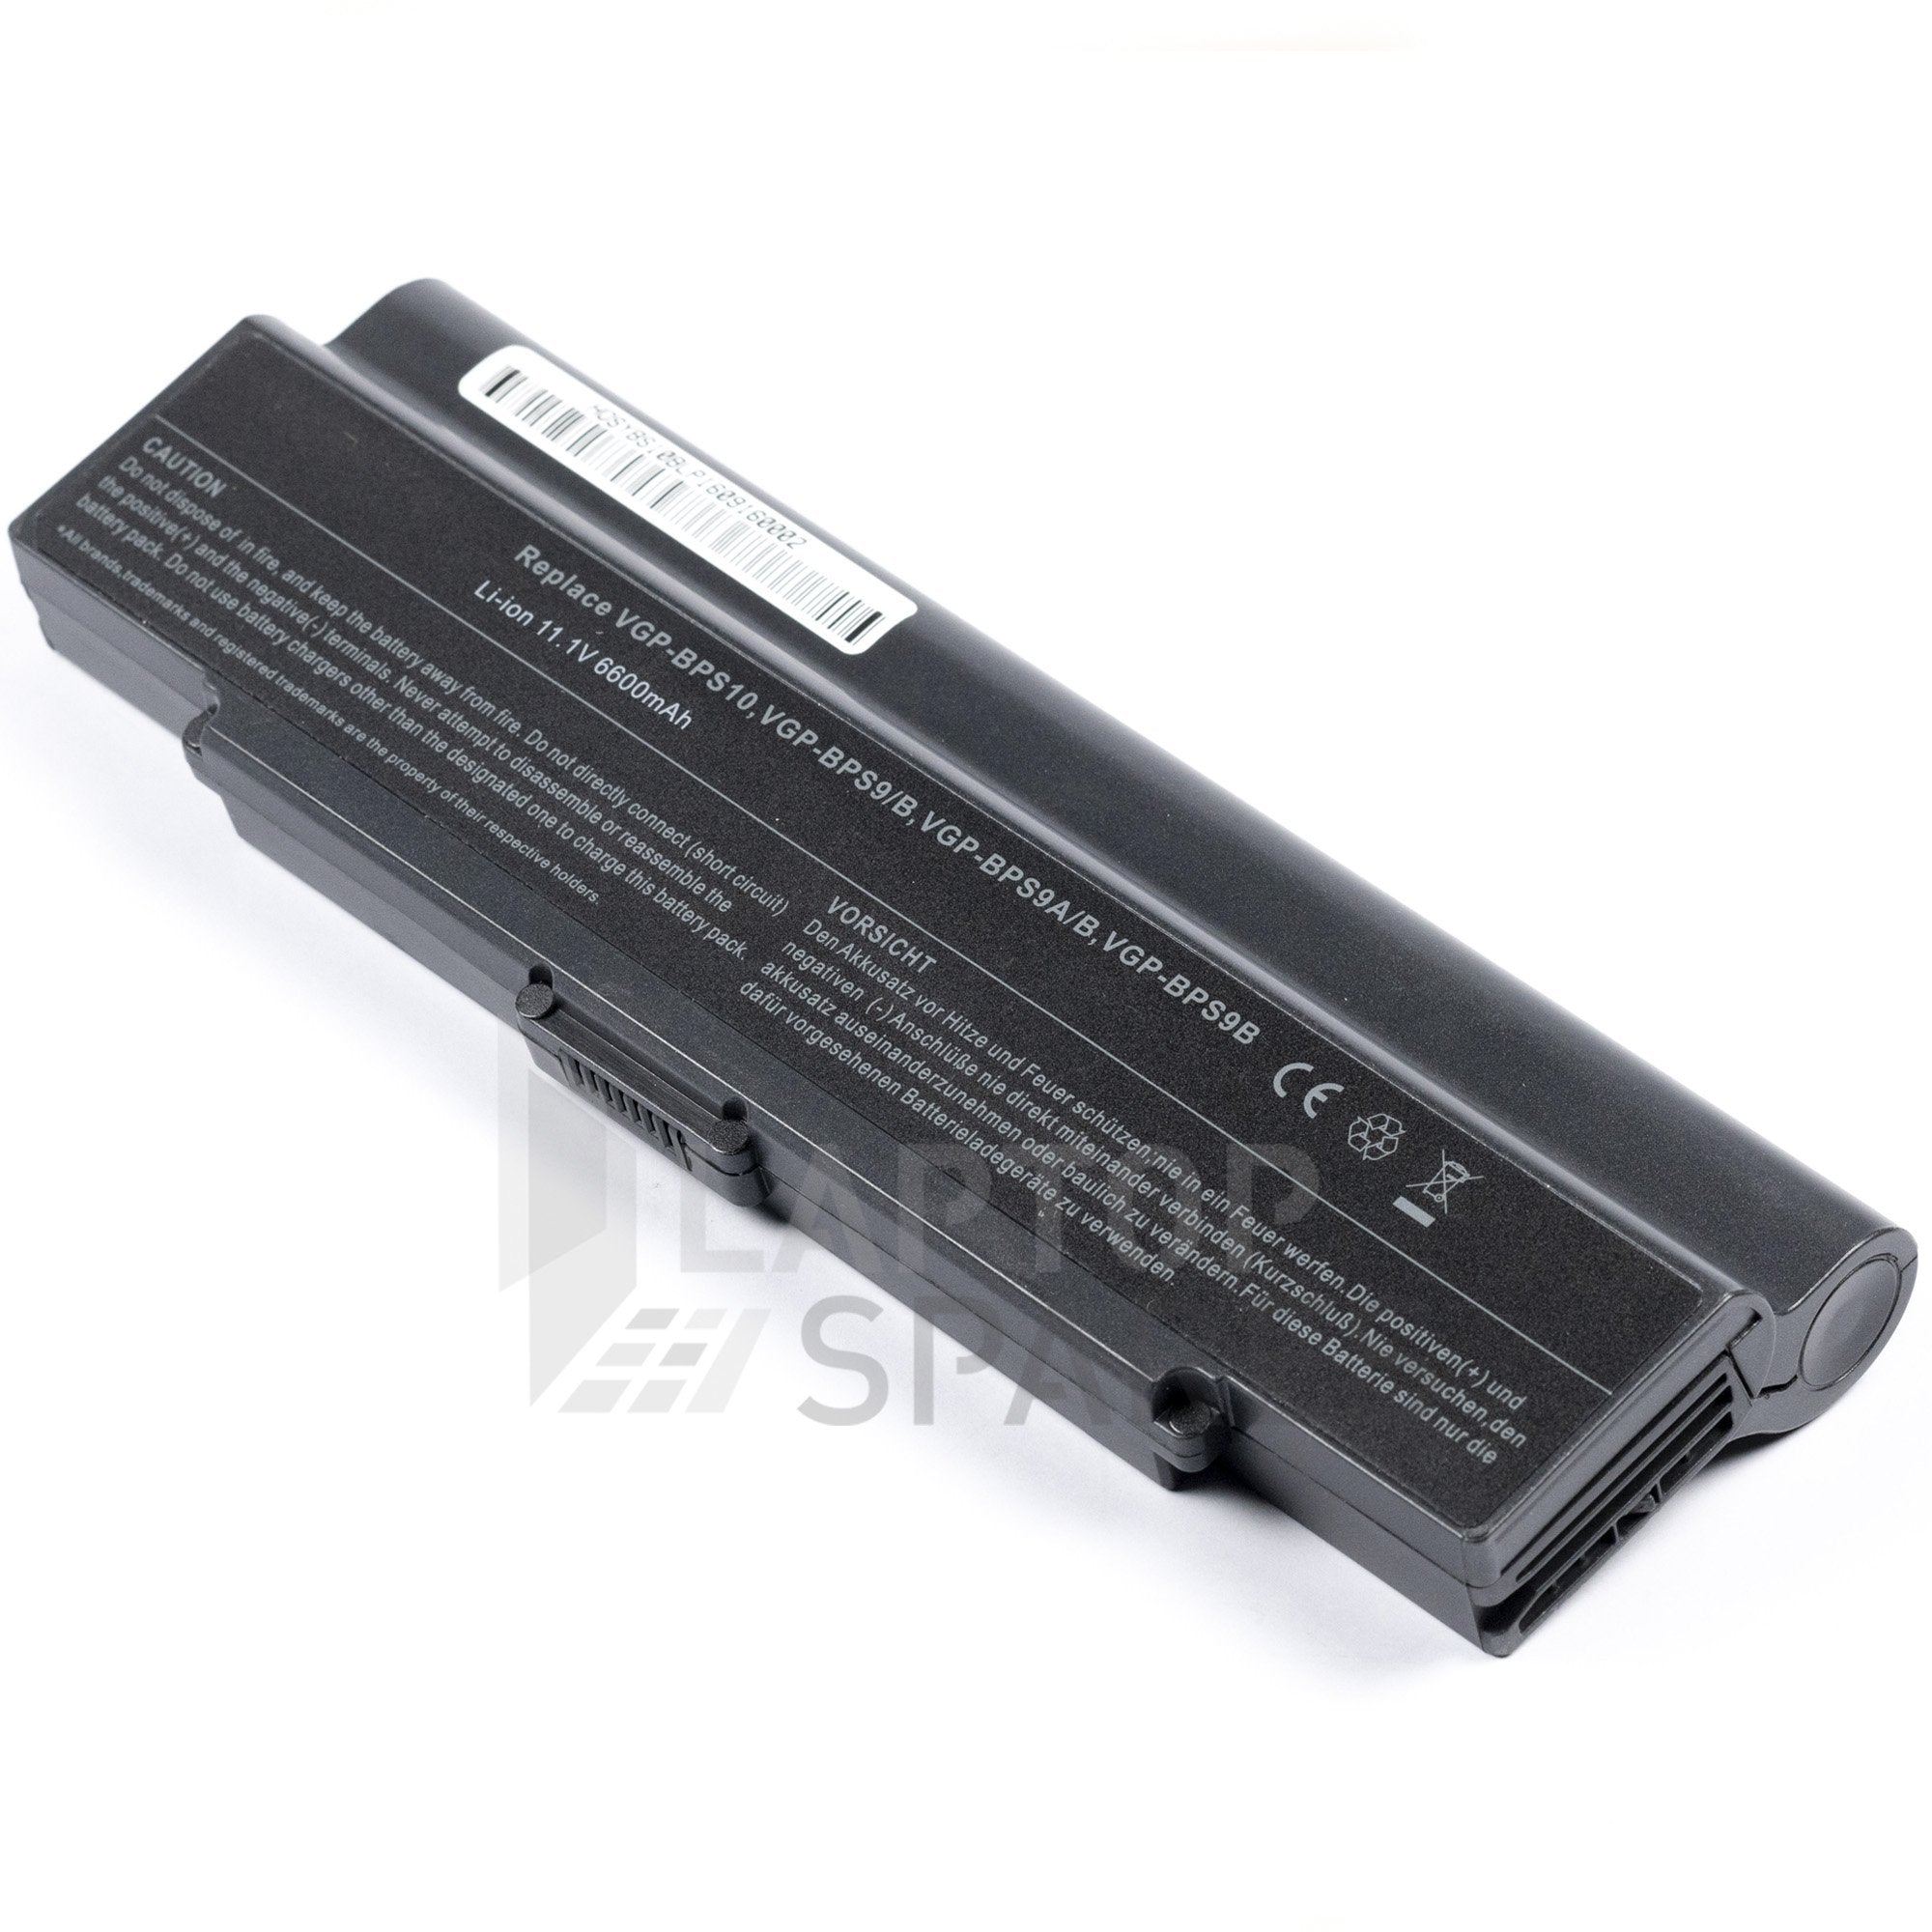 Sony Vaio VGN CR220E/R CR23/B 6600mAh 9 Cell Battery